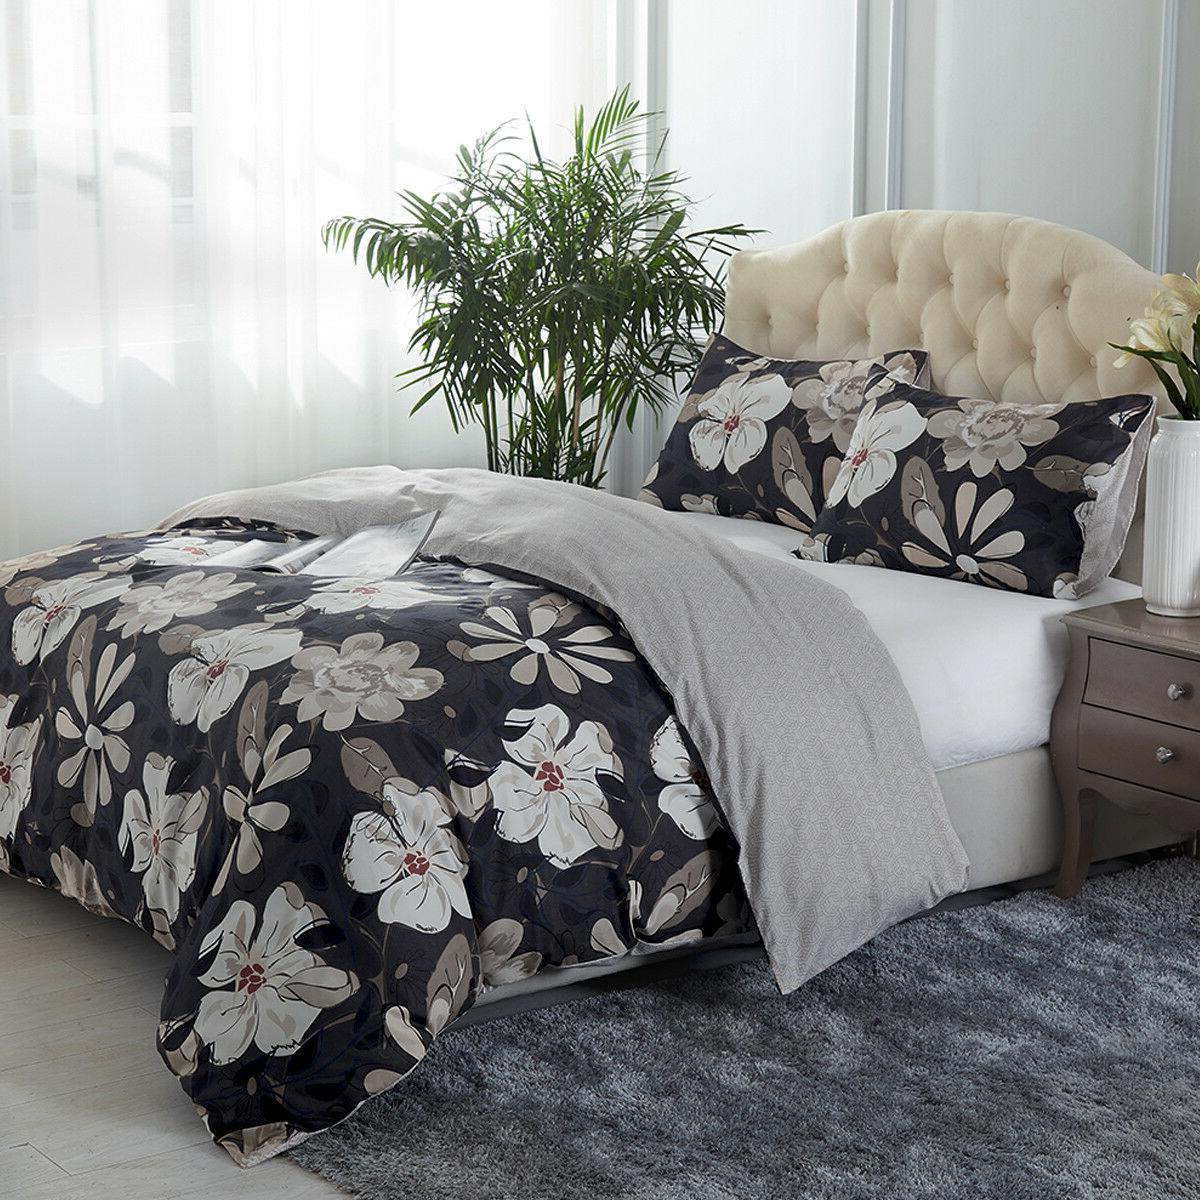 3 Printed Duvet Cover Quilt Cover Queen/King